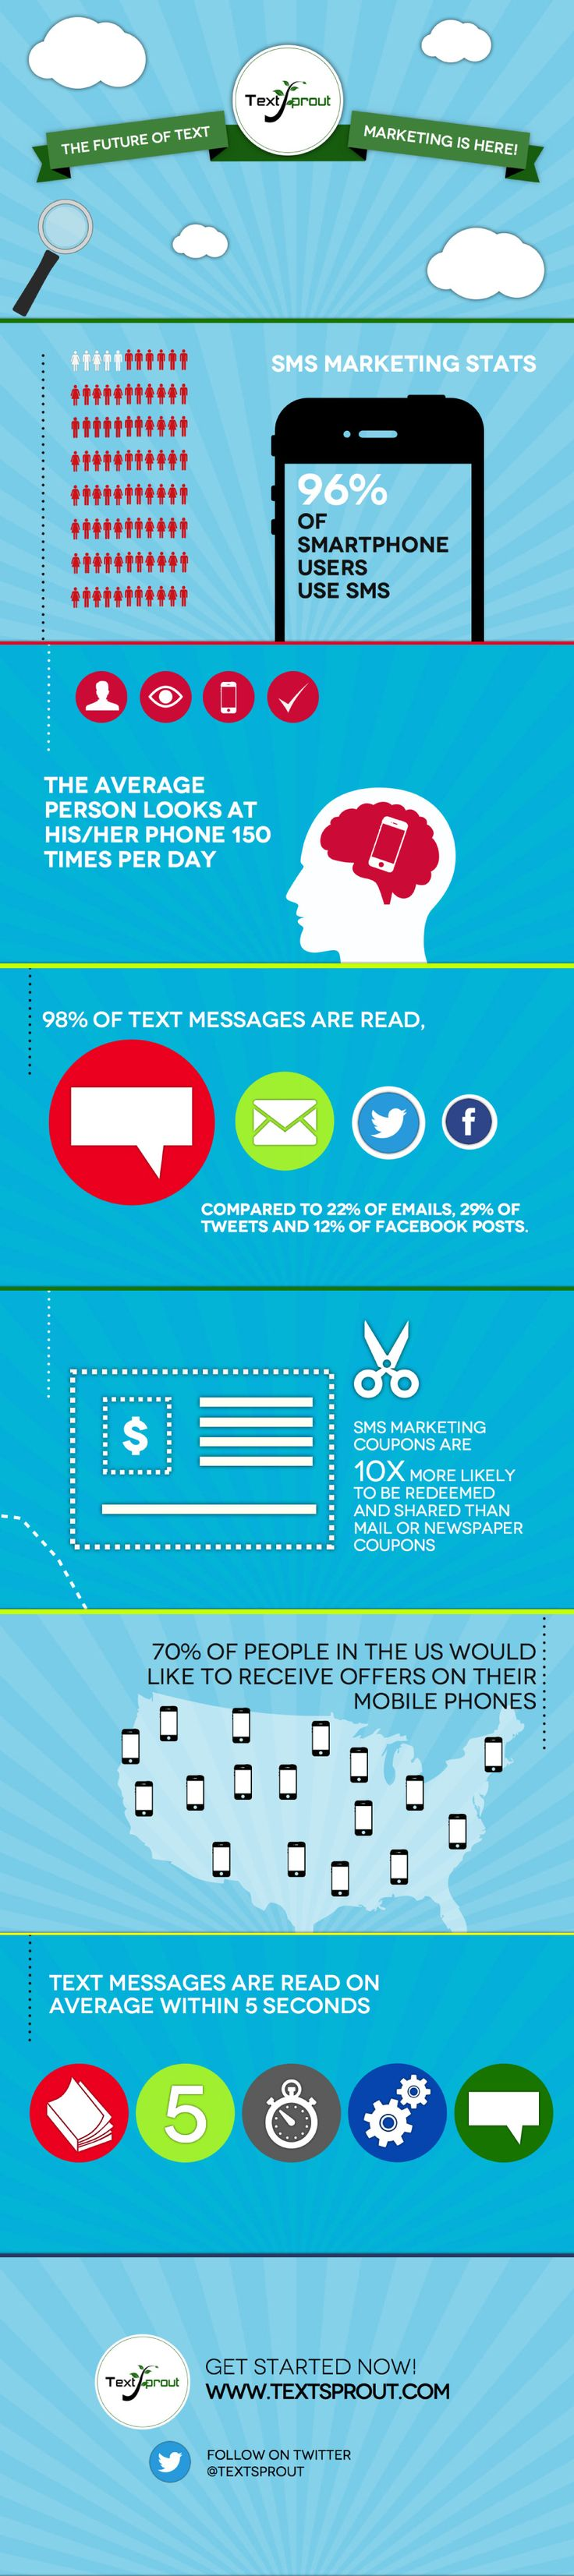 SMS Marketing Fun Facts and Stats   Visit our new infographic gallery at visualoop.com/